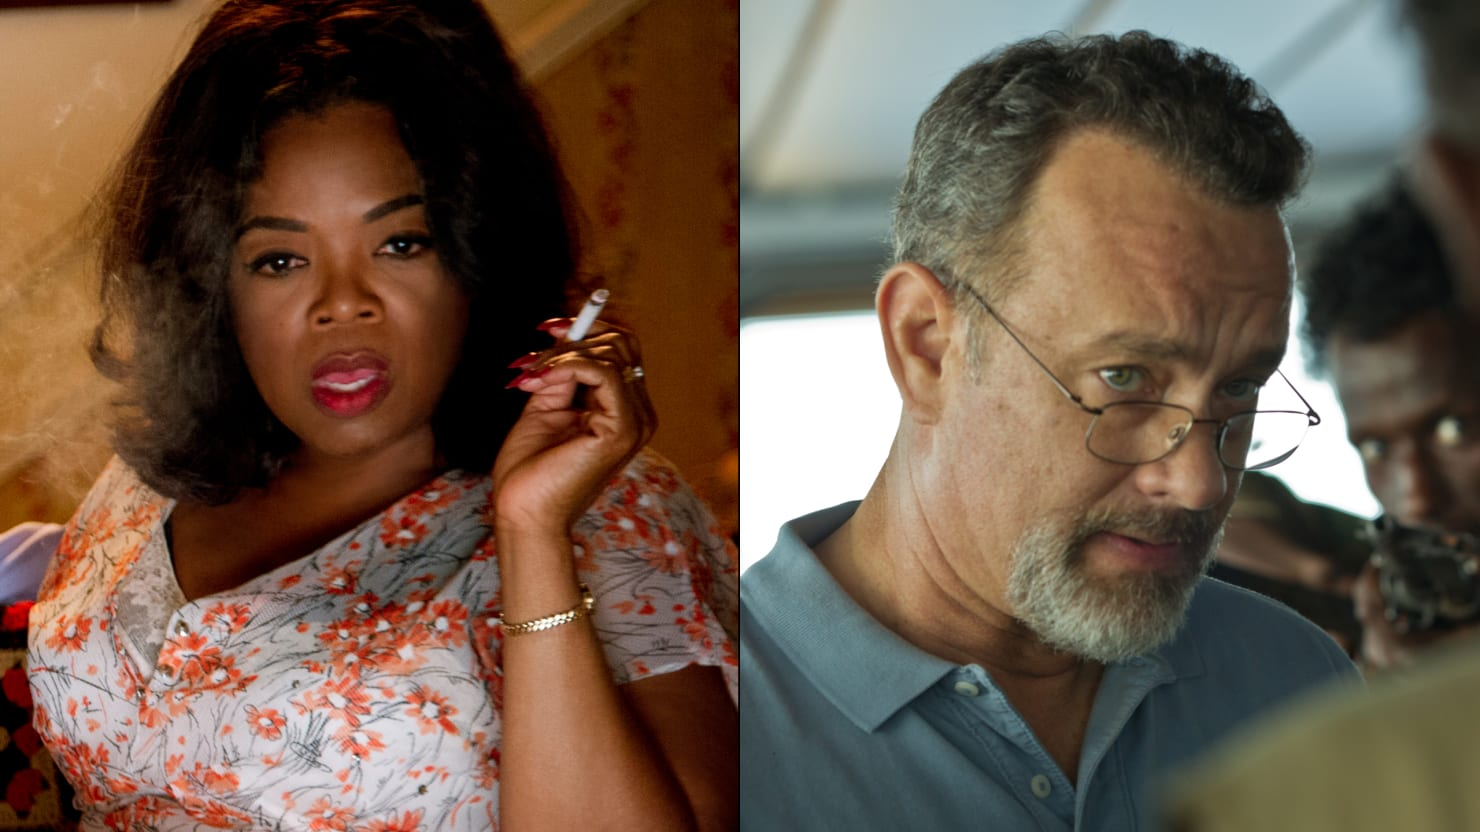 13 Oscar Nomination Shockers: Oprah, Tom Hanks, 'Inside Llewyn Davis,' and More